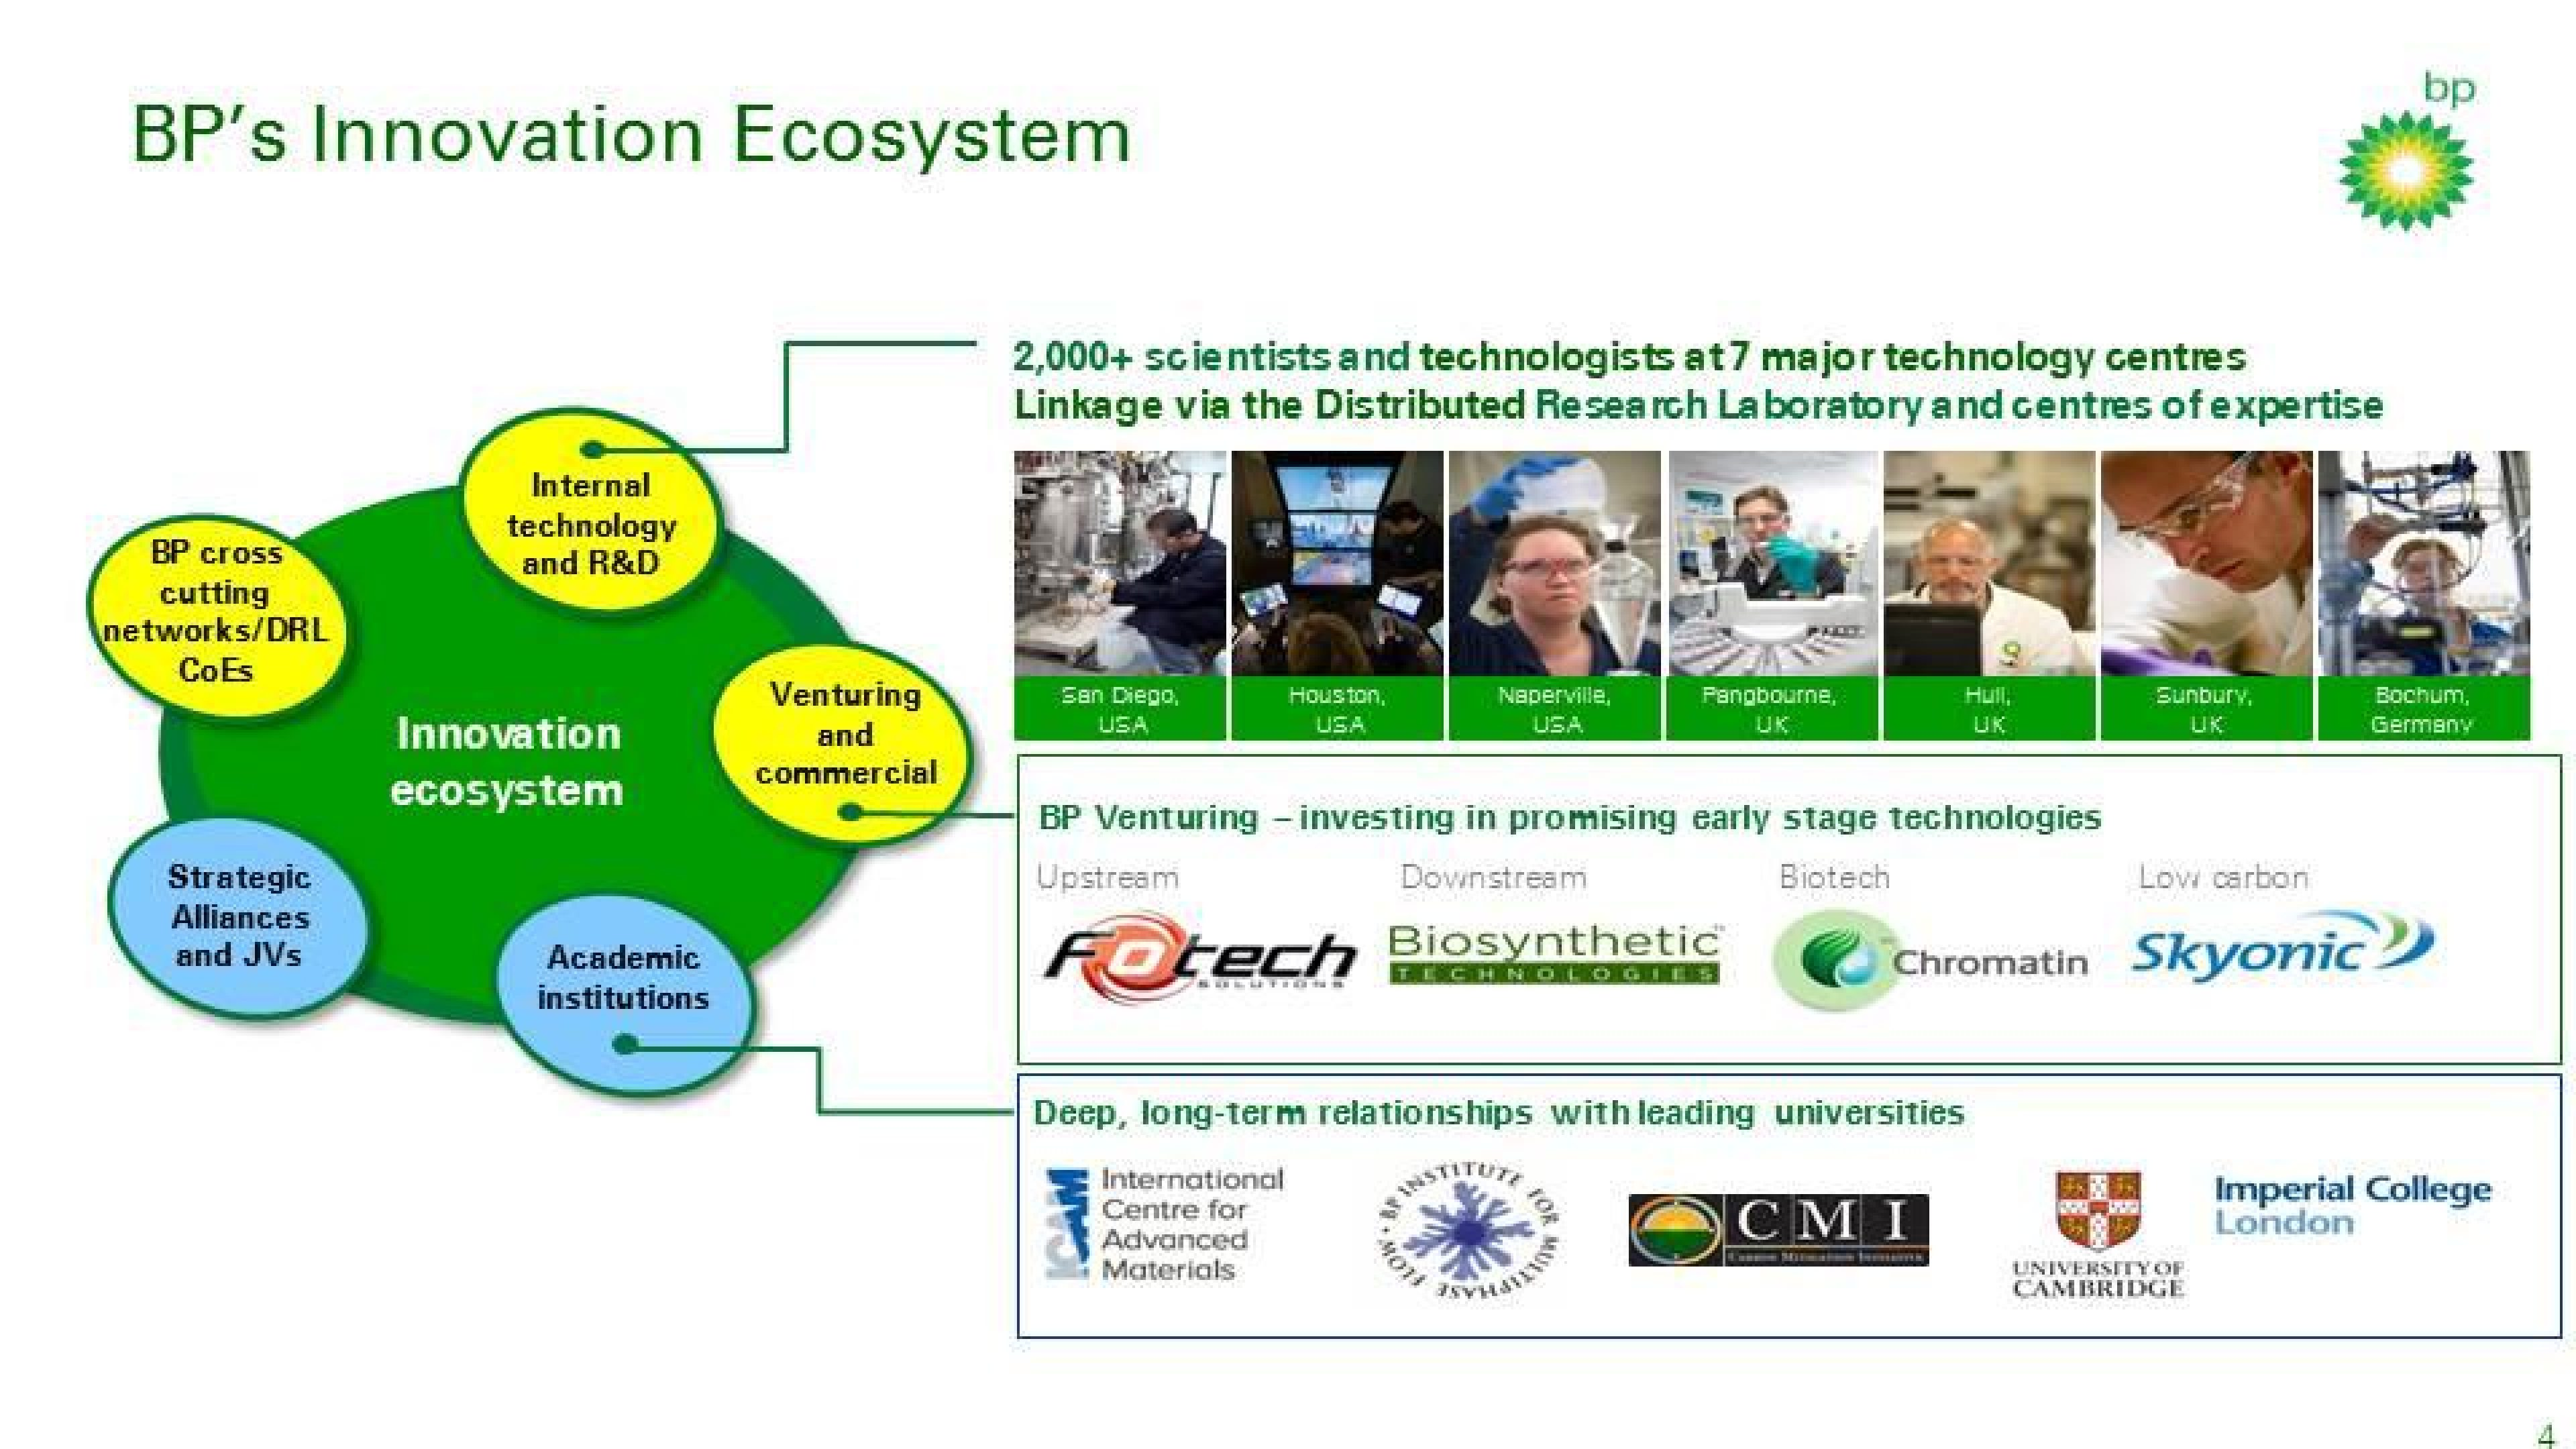 BP Innovation Ecosystem